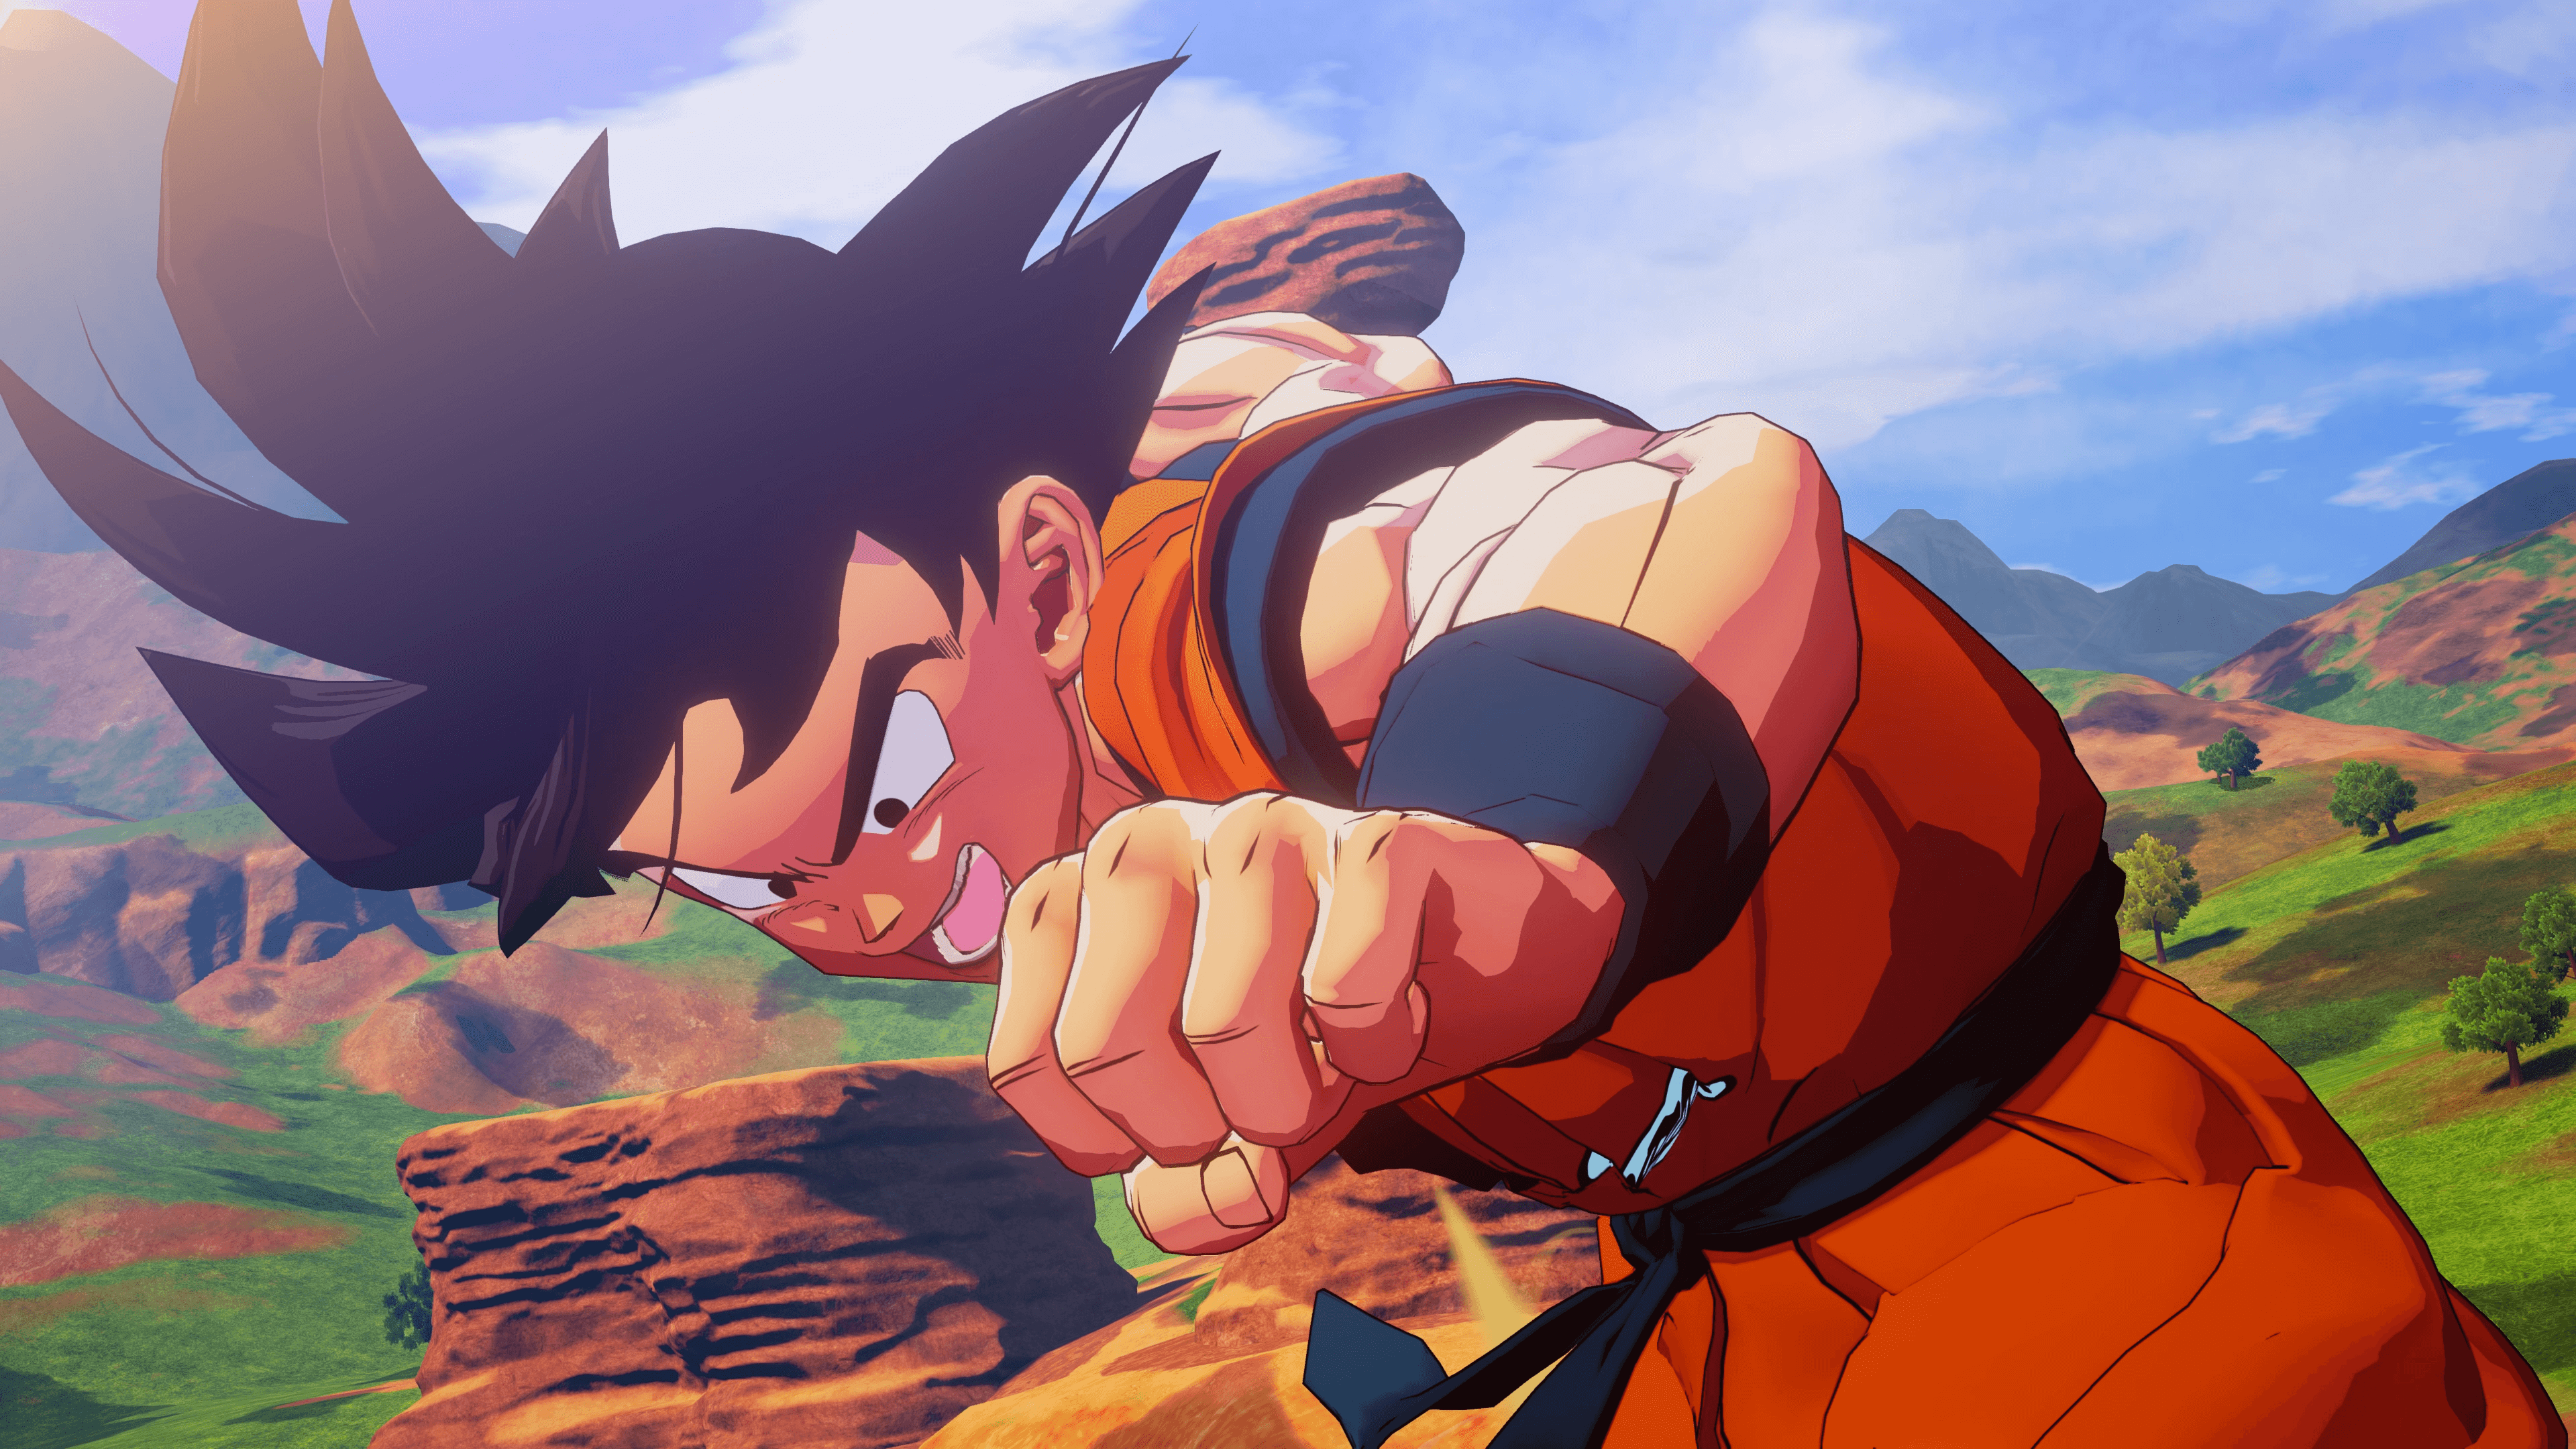 CyberConnect2 shares how its artists faithfully recreated the Dragon Ball Z universe in 3D